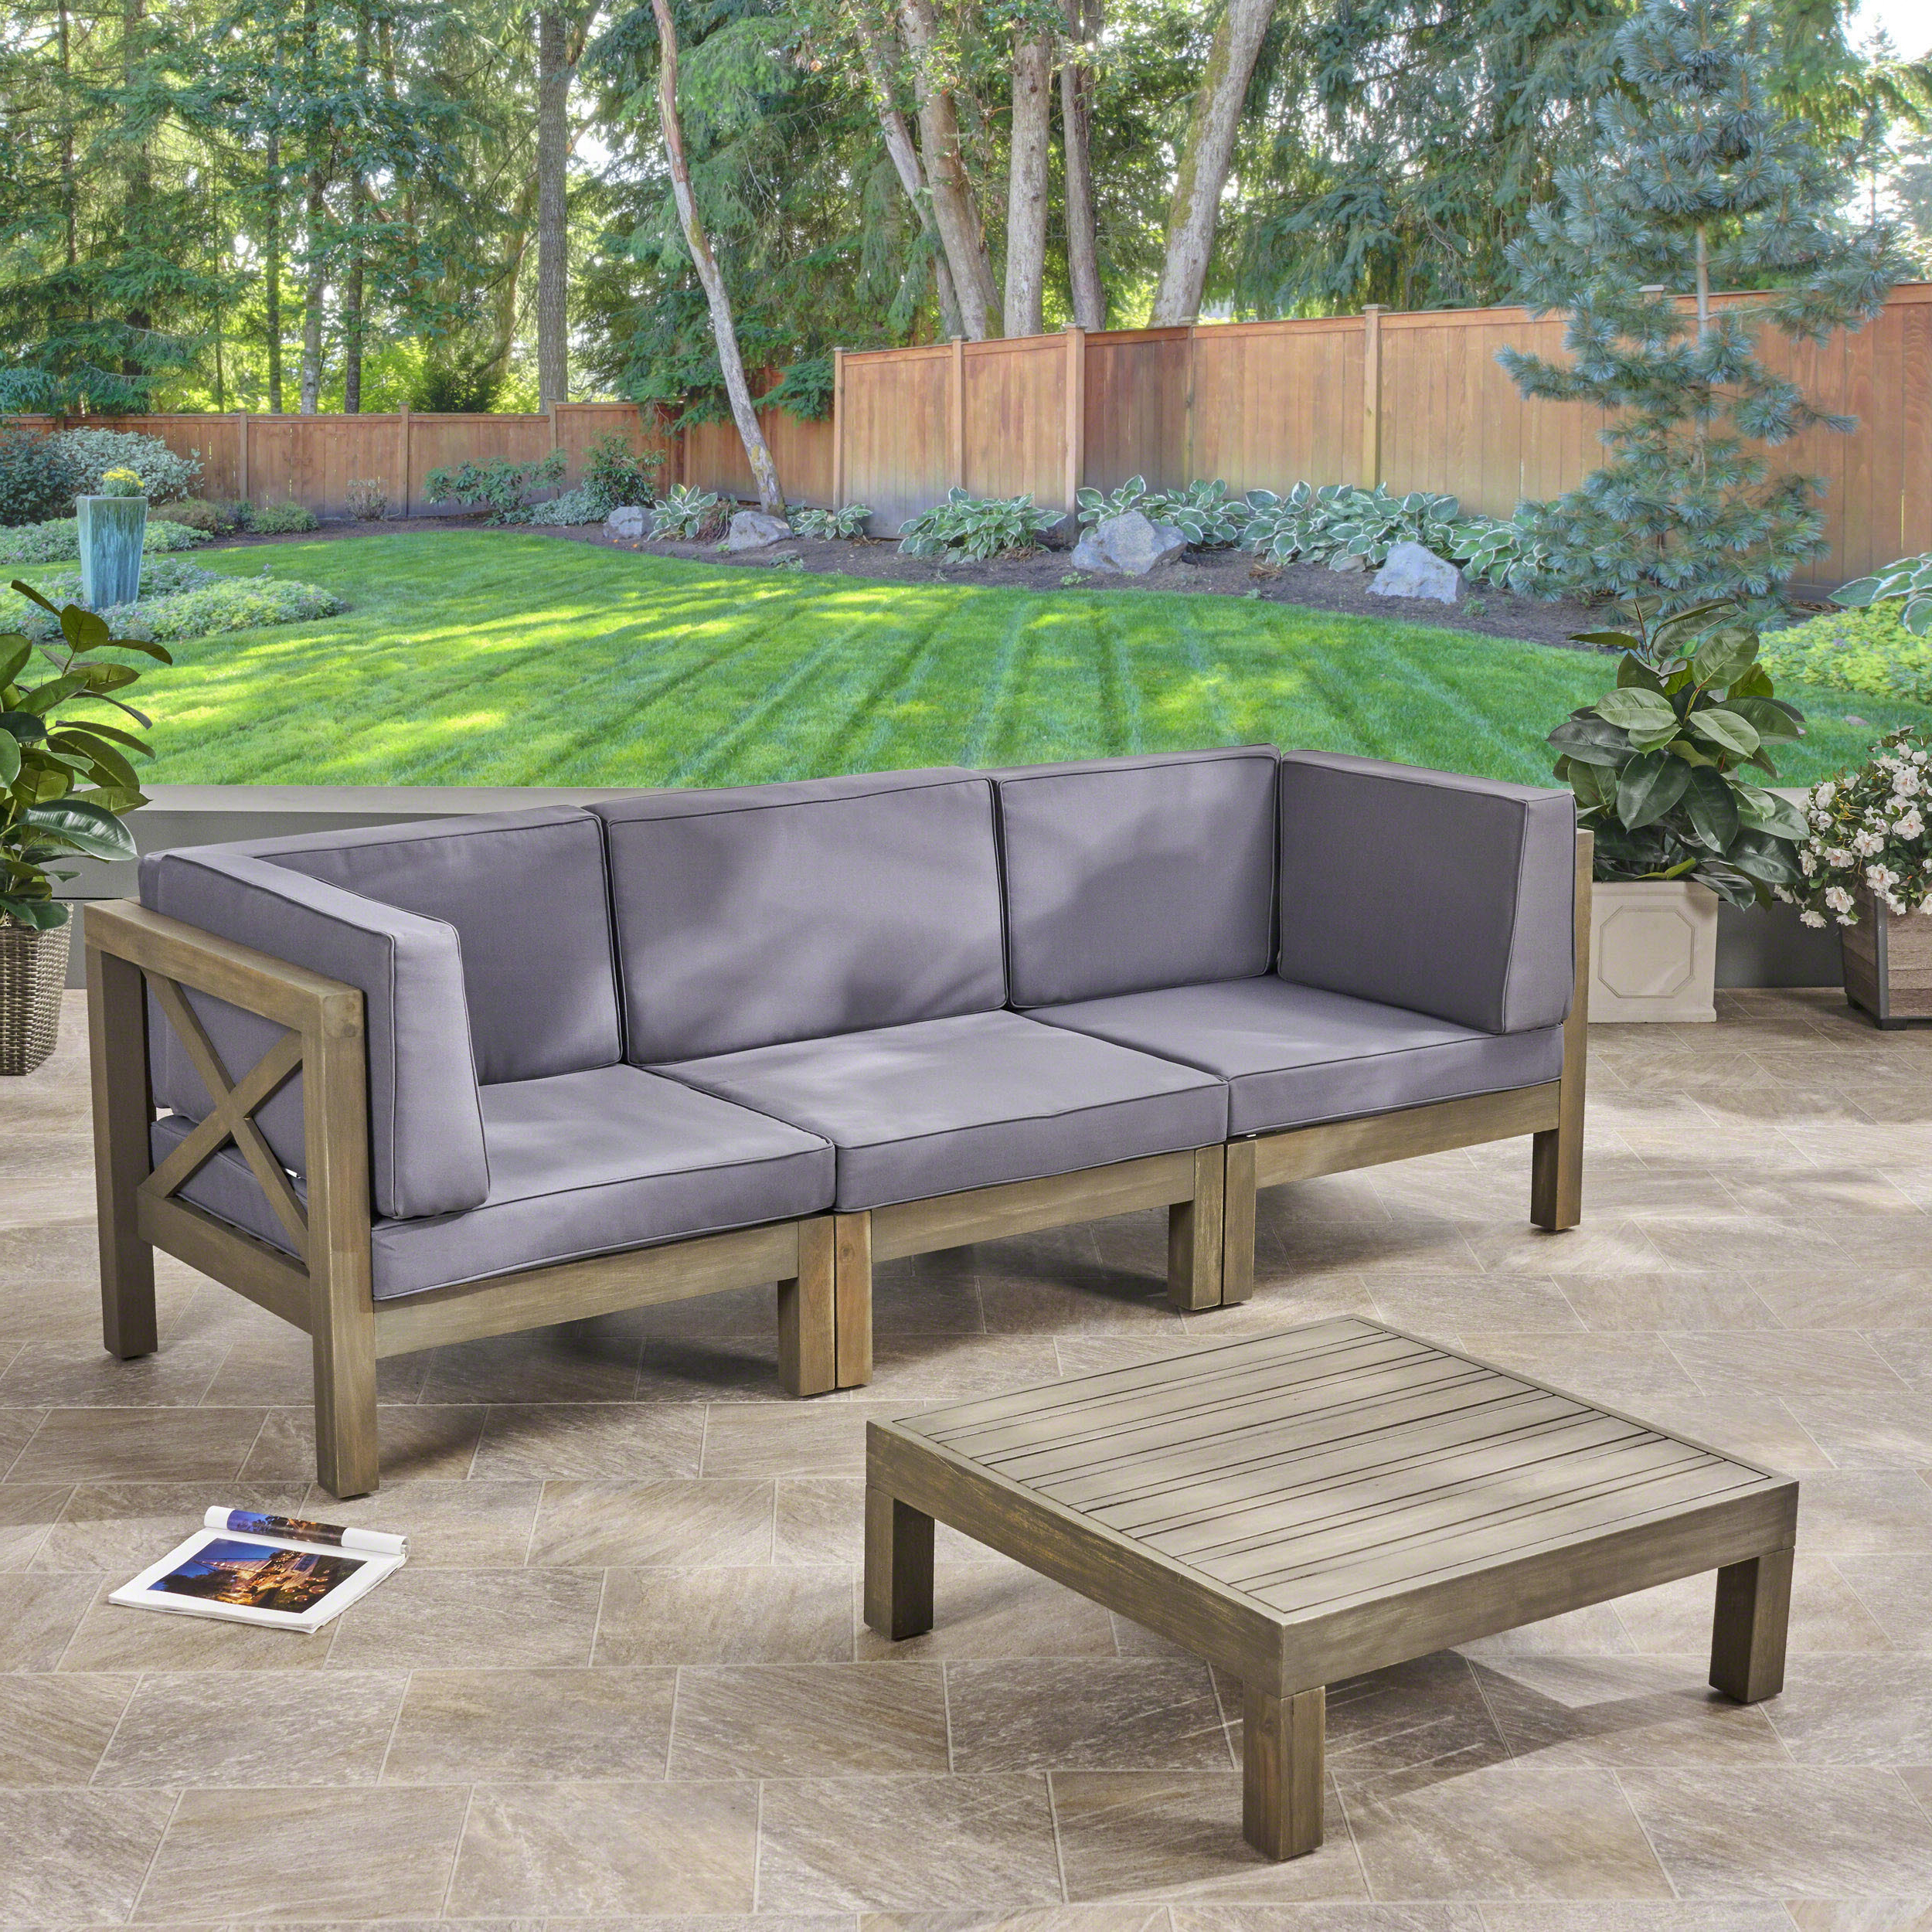 Ellison Patio Sectionals With Cushions With Regard To Well Liked Ellison 4 Piece Sofa Seating Group With Cushions (View 10 of 20)